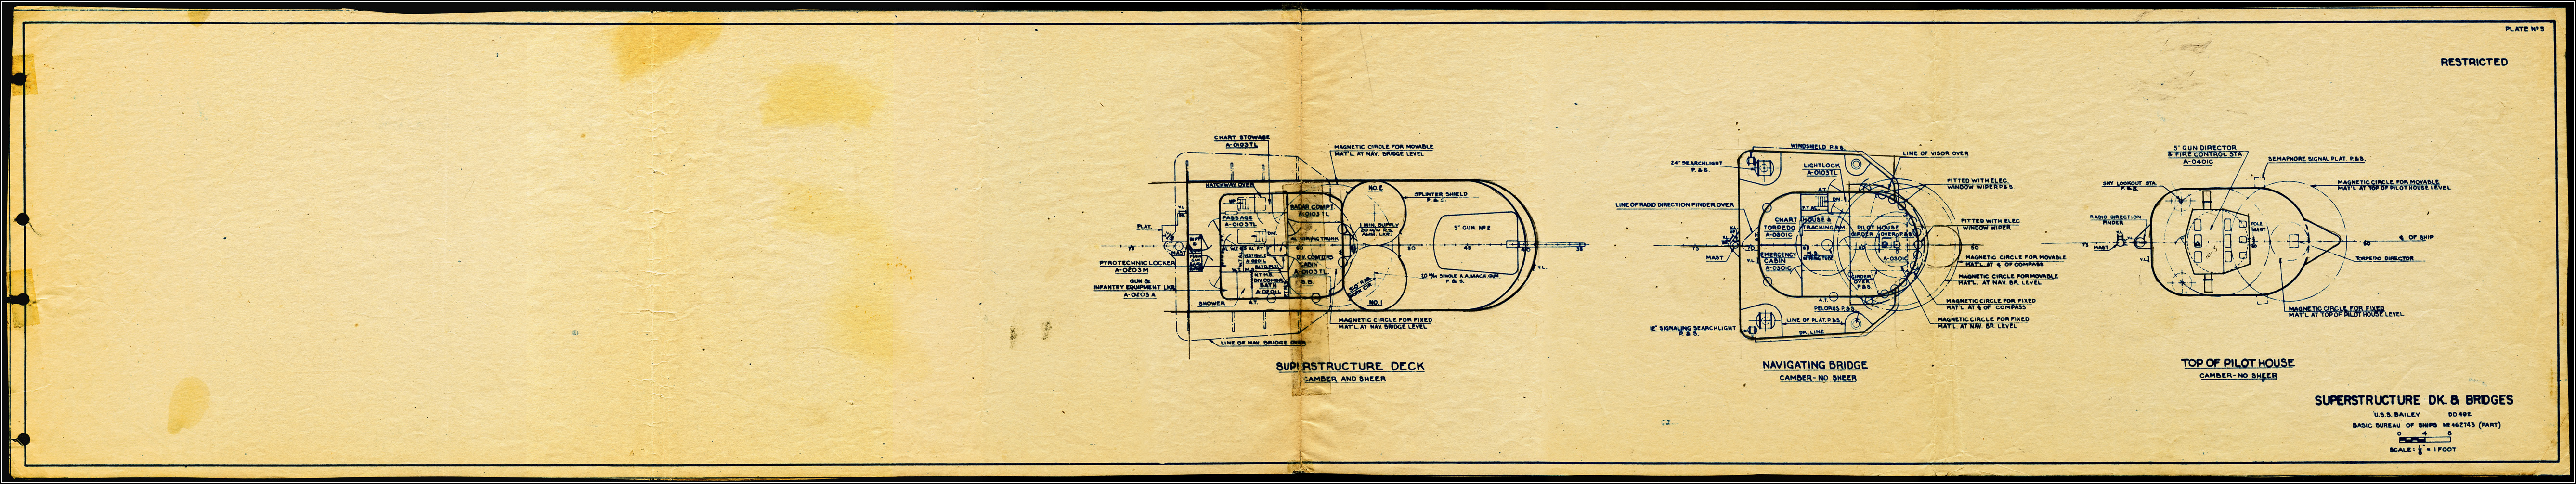 PLATE No5 SUPERSTRUCTURE DECK (5350X1006) (66) (10).jpg